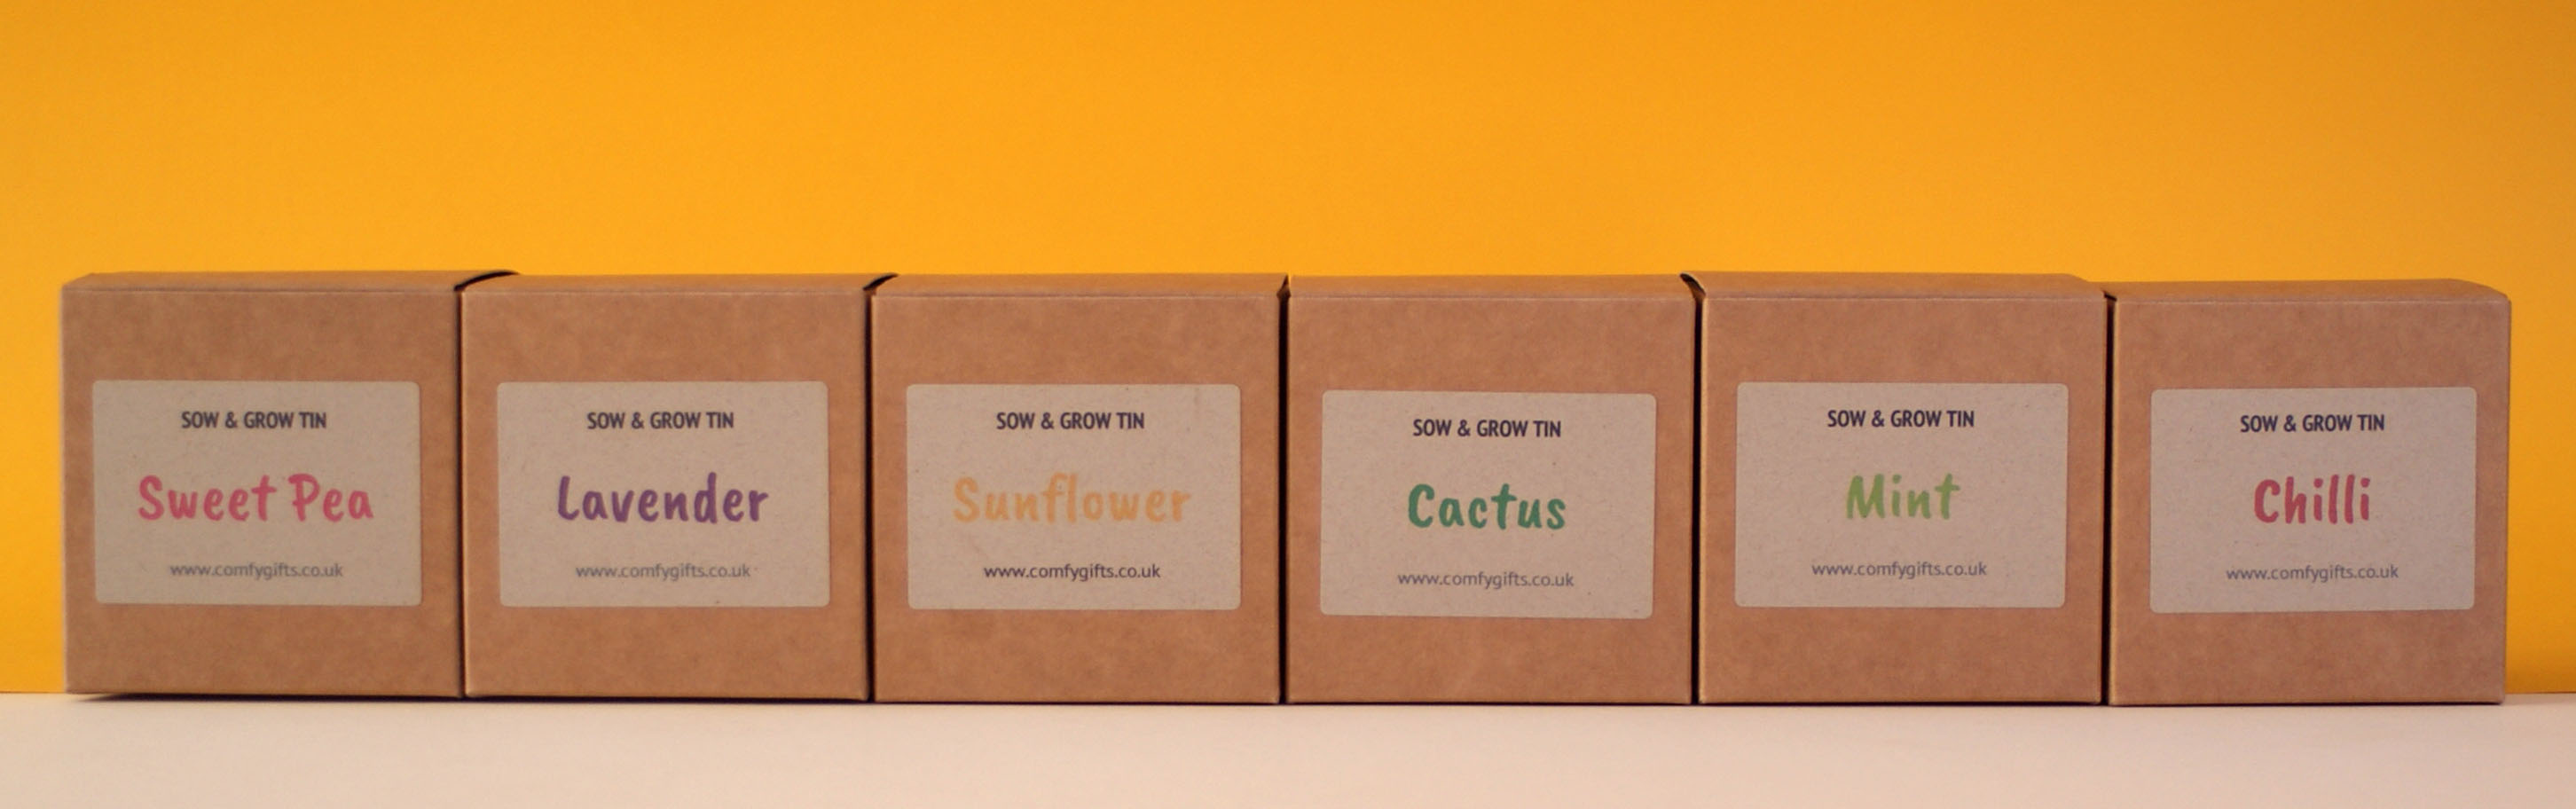 Sow & Grow Tins - fun grow your own gifts delivered